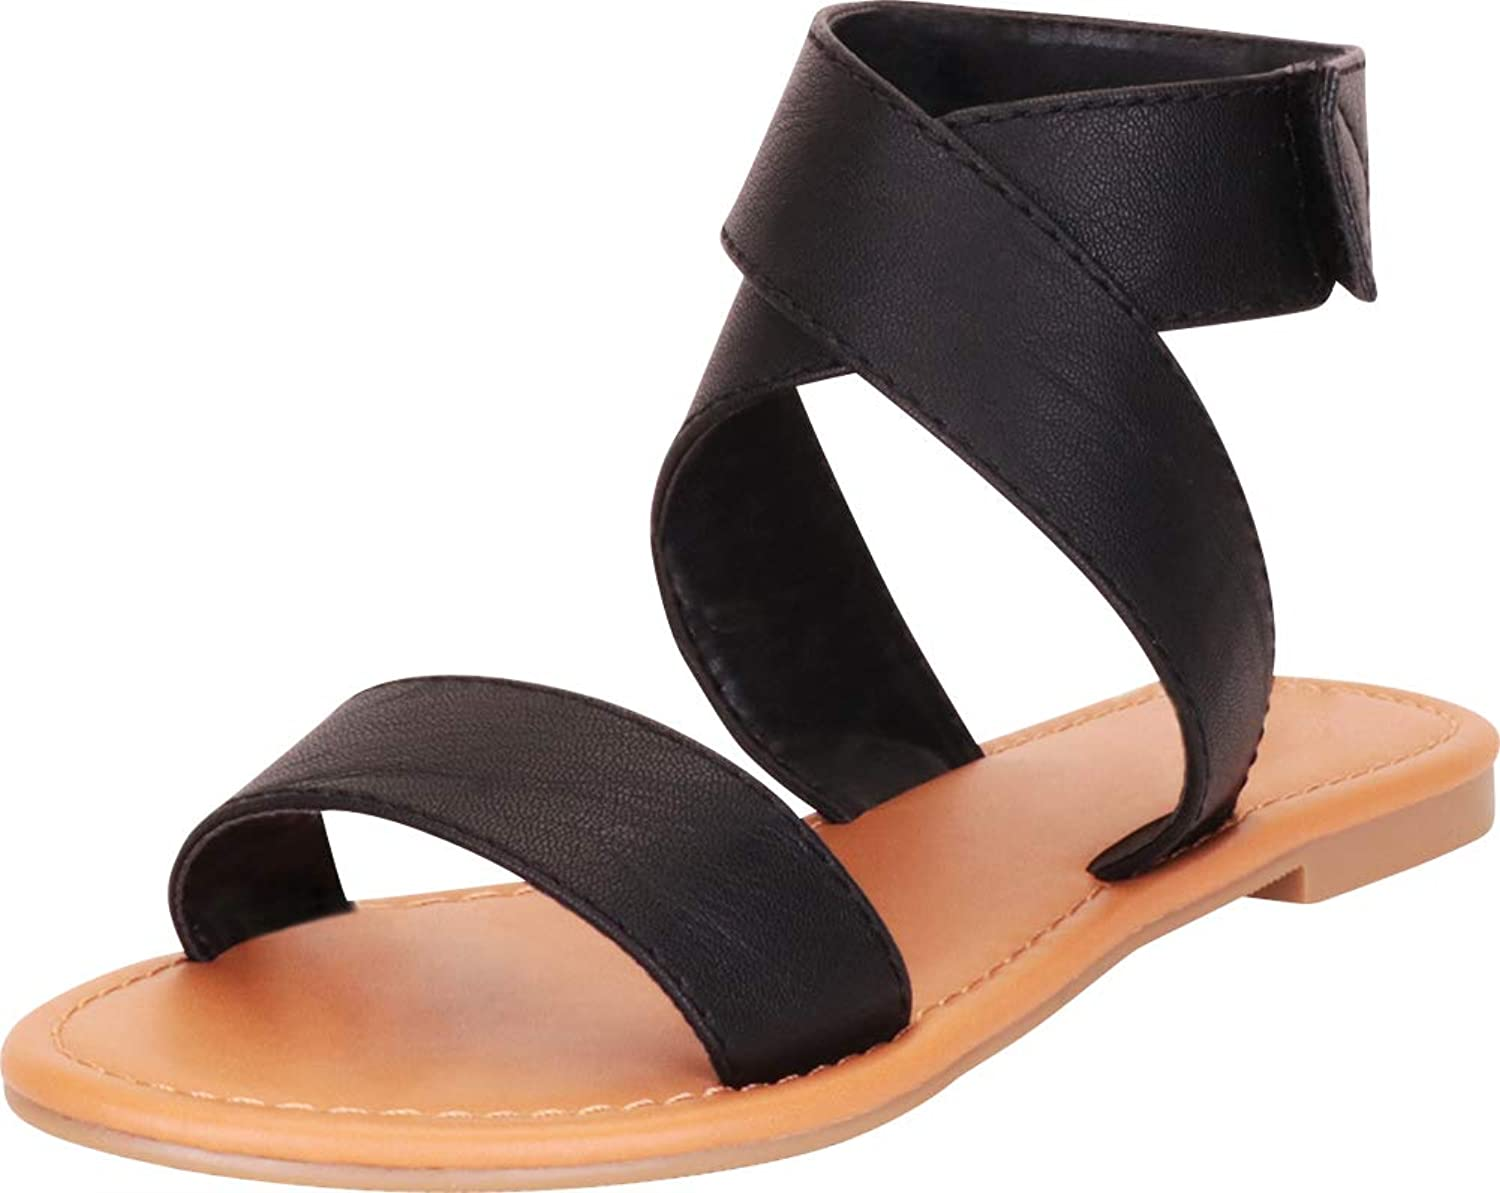 Cambridge Select Women's Open Toe Crisscross Ankle Strappy Flat Sandal